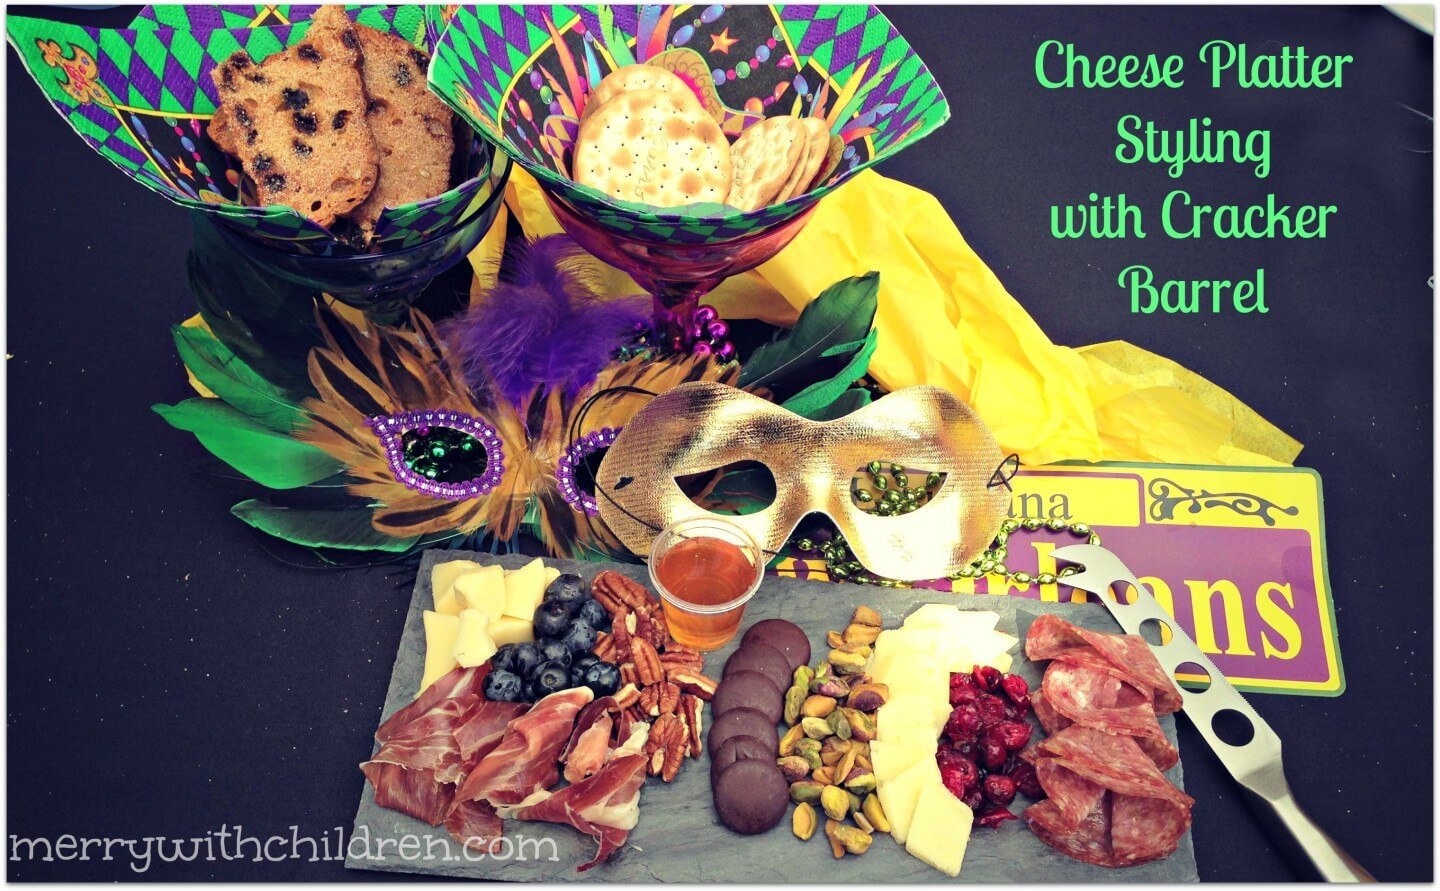 Cheese Platter Styling with Cracker Barrel